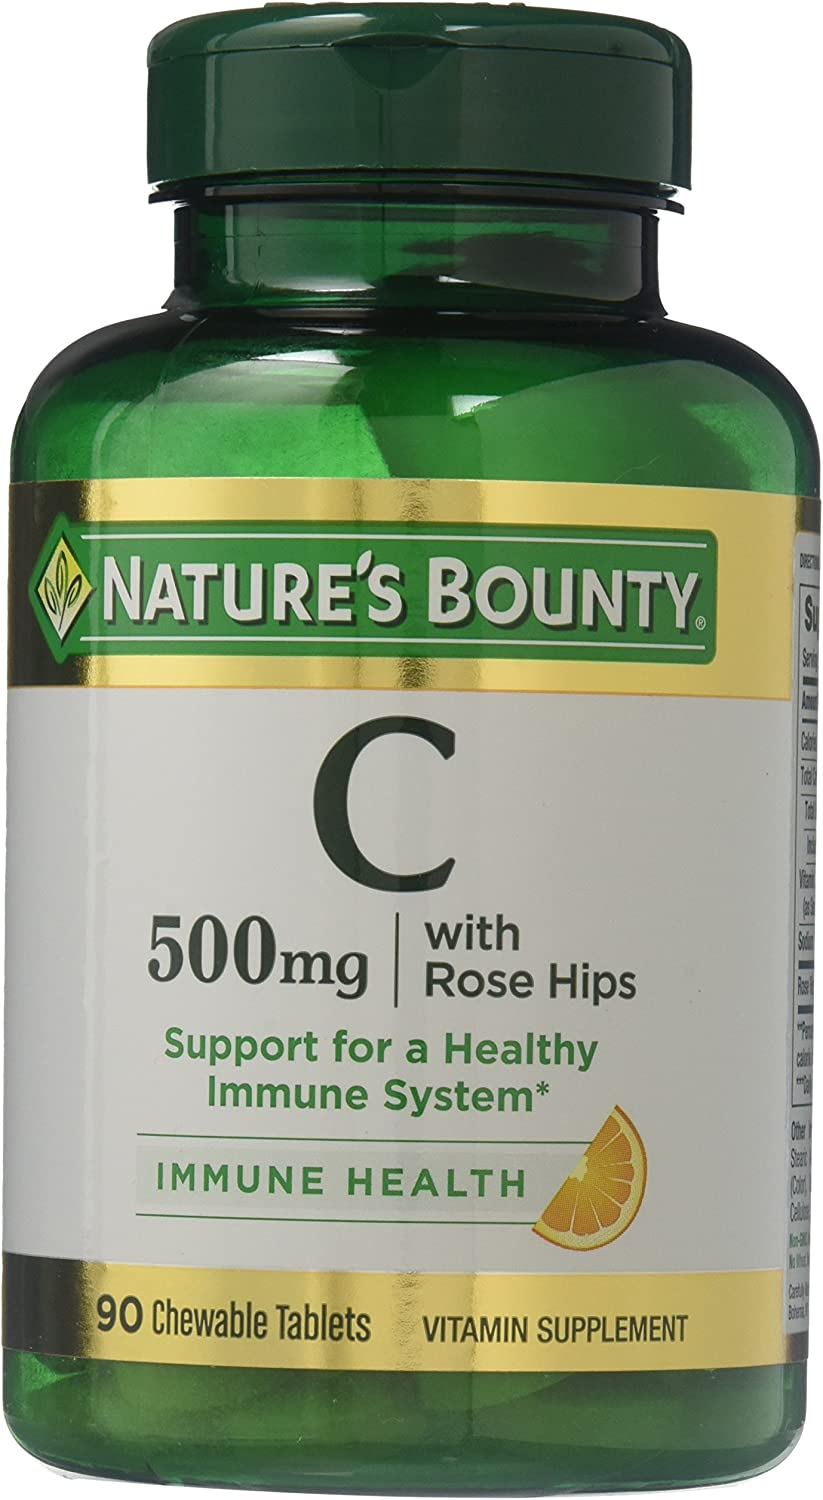 Nature's Bounty Vitamin C with Rose Hips USP, 500mg, 180 Chewable Tablets (2 X 90 Count Bottles)